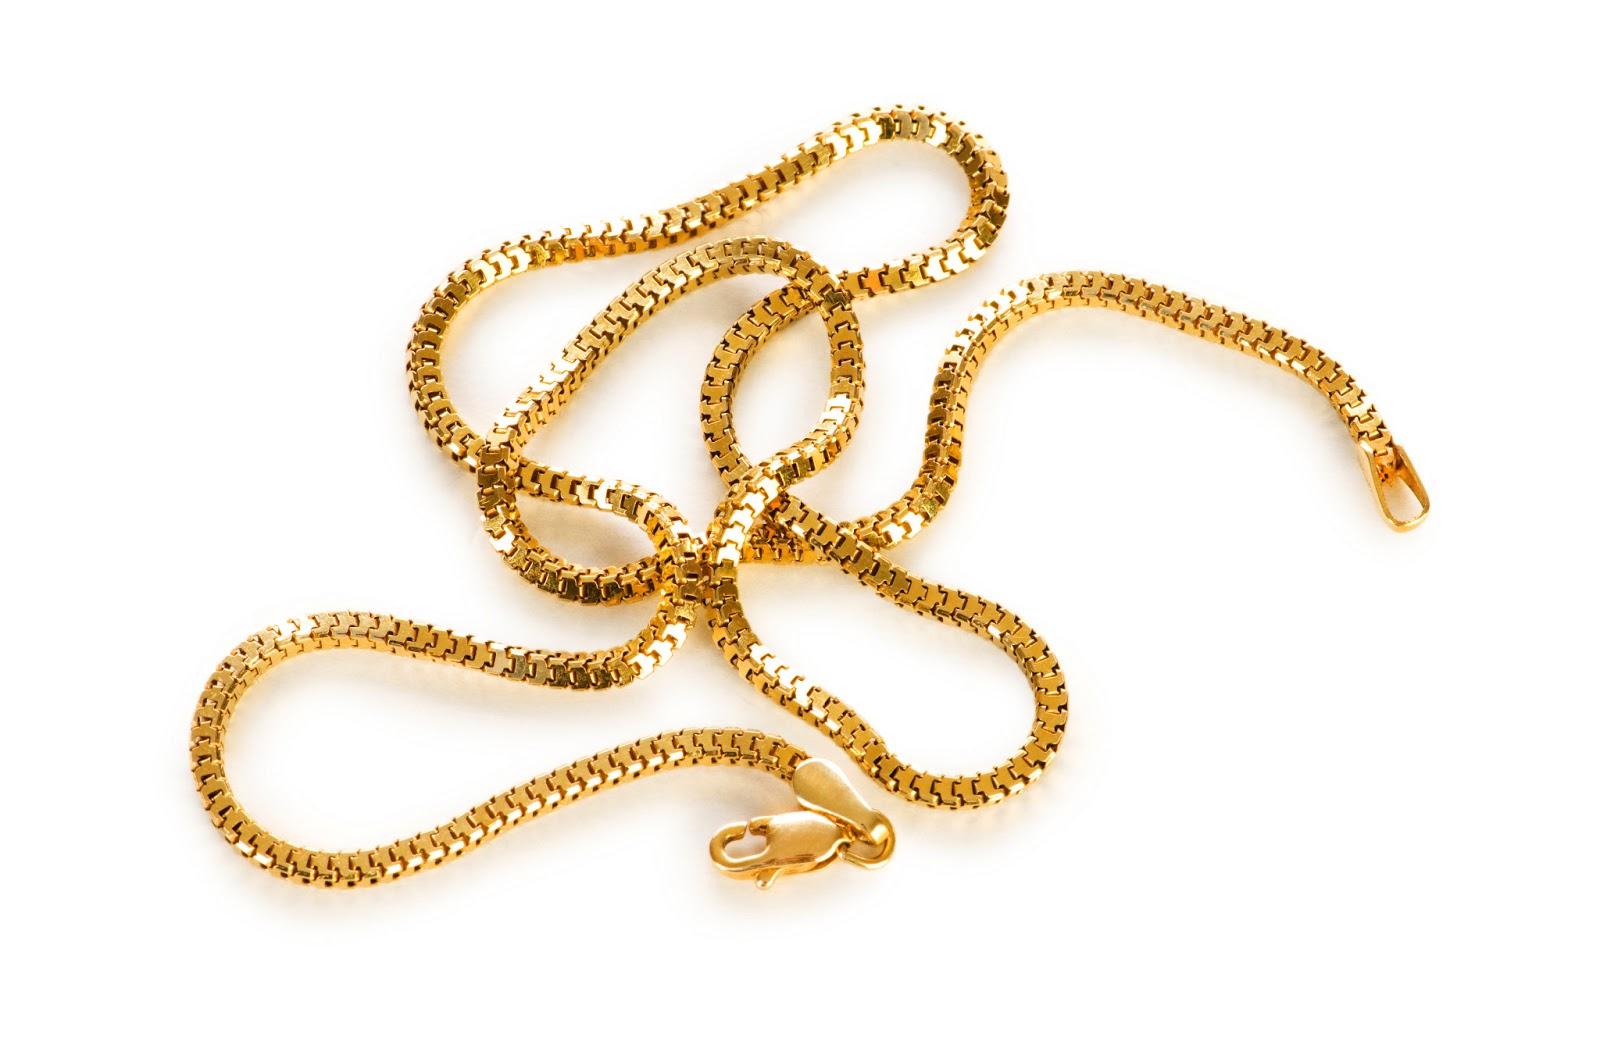 chain chains in jewelry by stone gold expensive necklace bulgari pin yellow multi